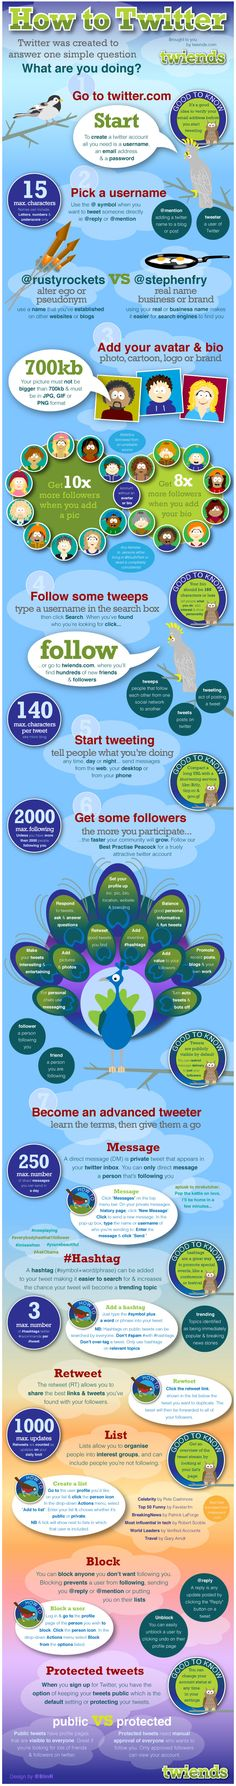 #twitter #infographic Twitter Marketing Infographic